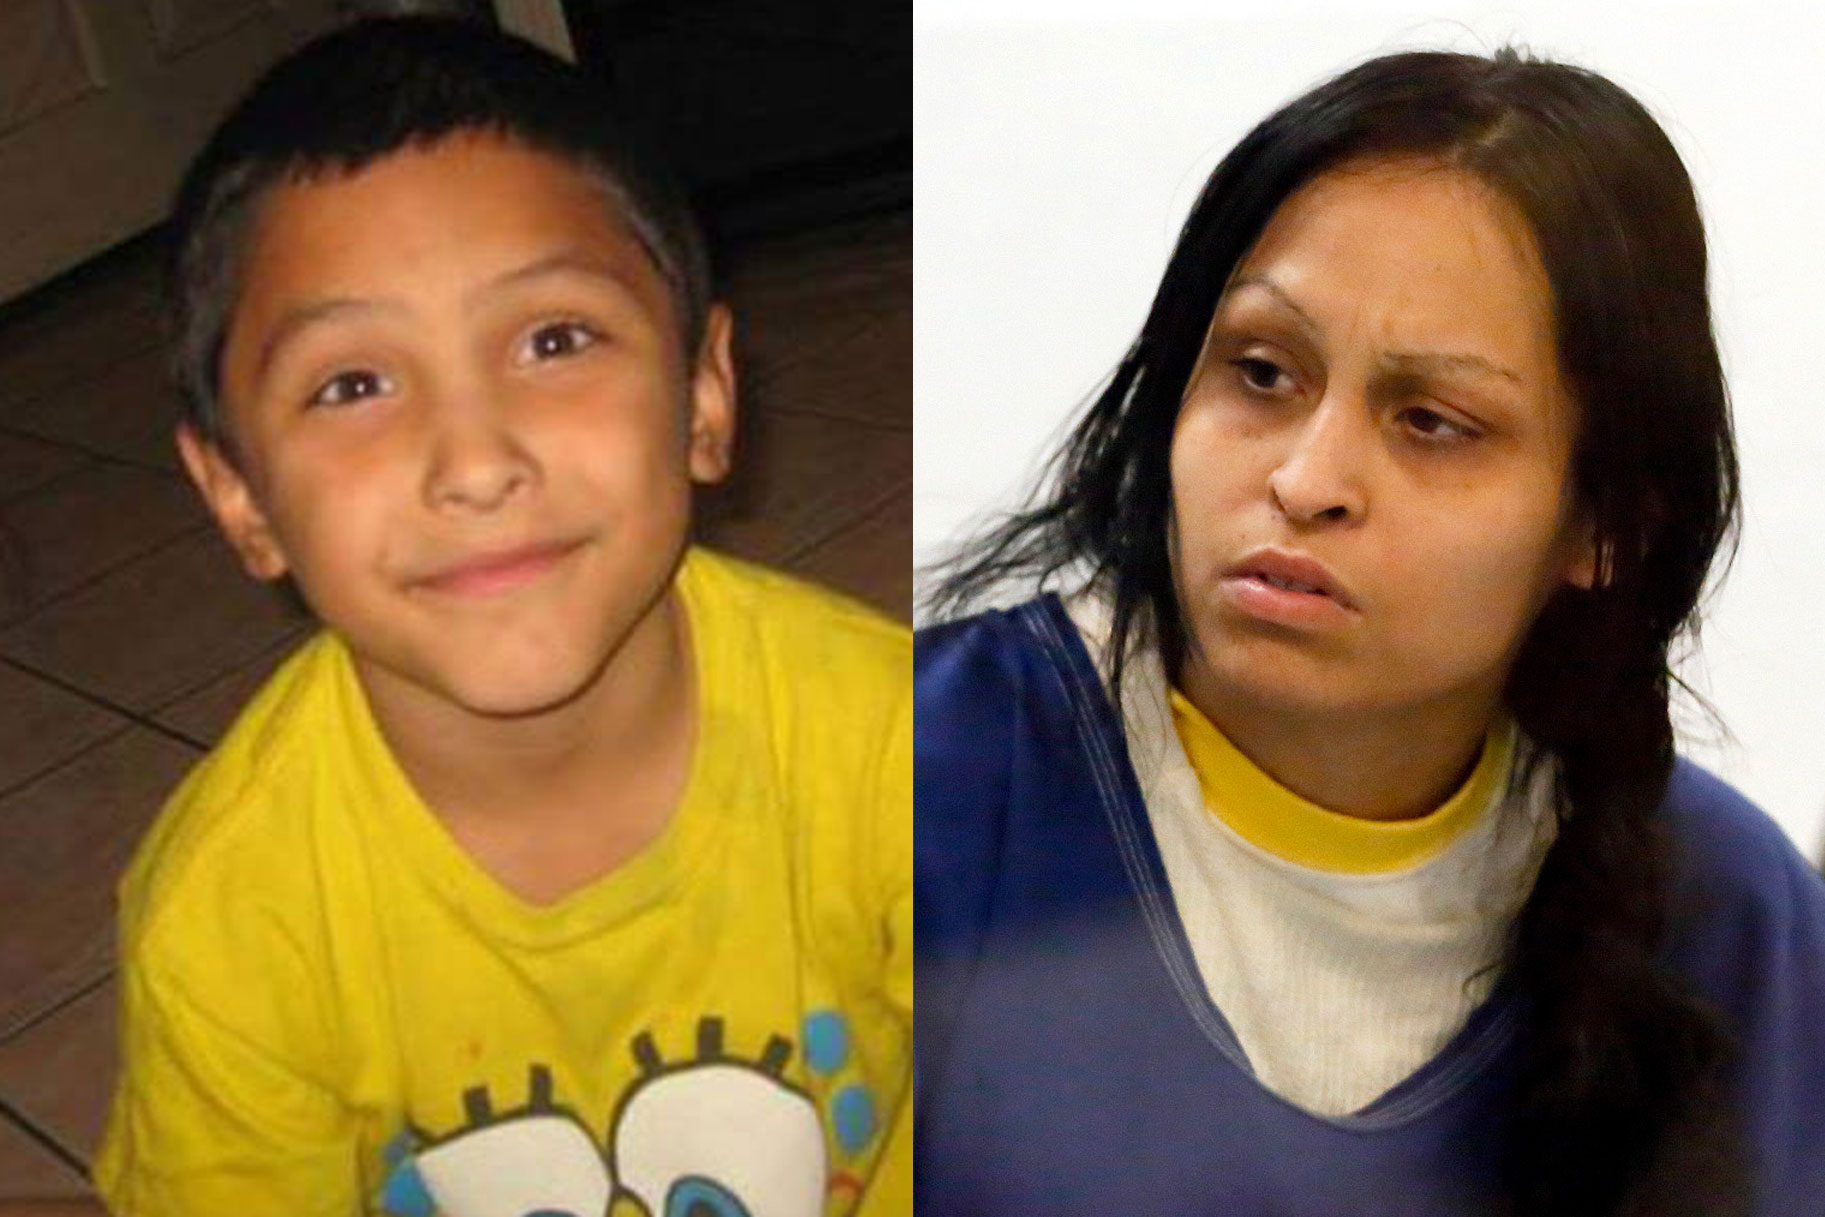 Mother of Murdered 8 yr old Gabriel Fernandez files petition for re-sentencing, vacated murder conviction